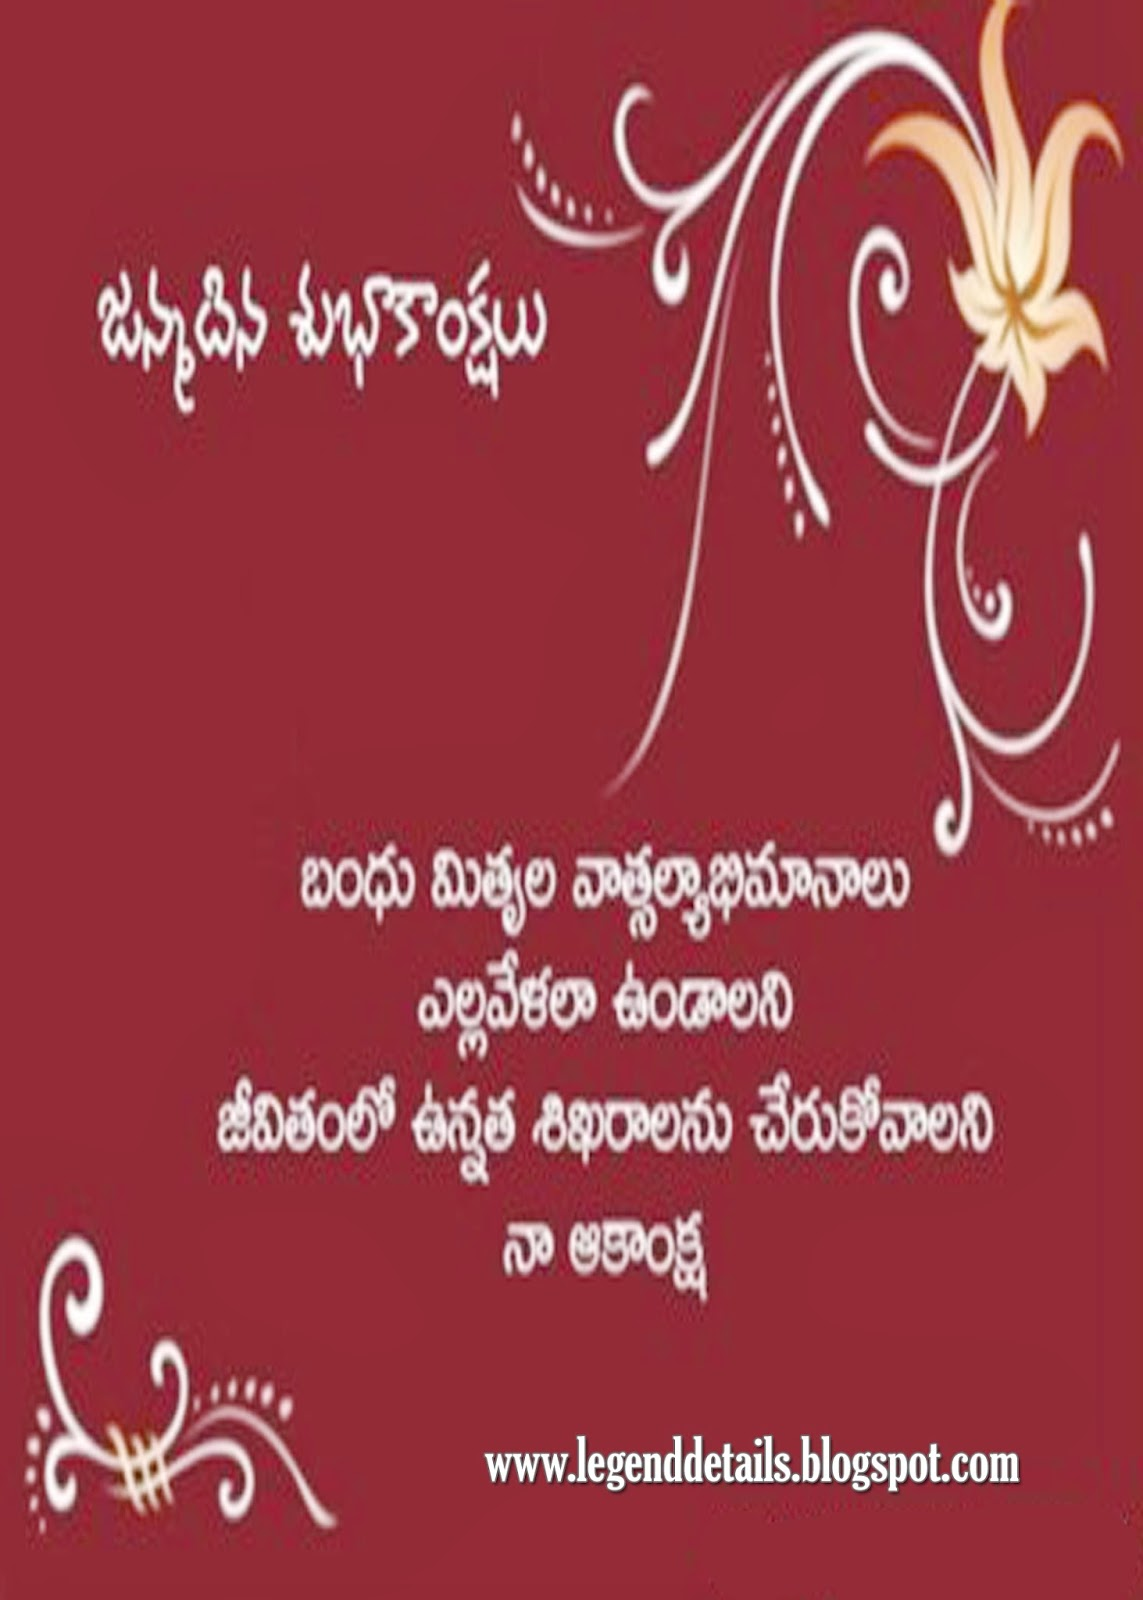 Birth day greetings in telugu free subhakankshalu with images birth day greetings for friend in telugu m4hsunfo